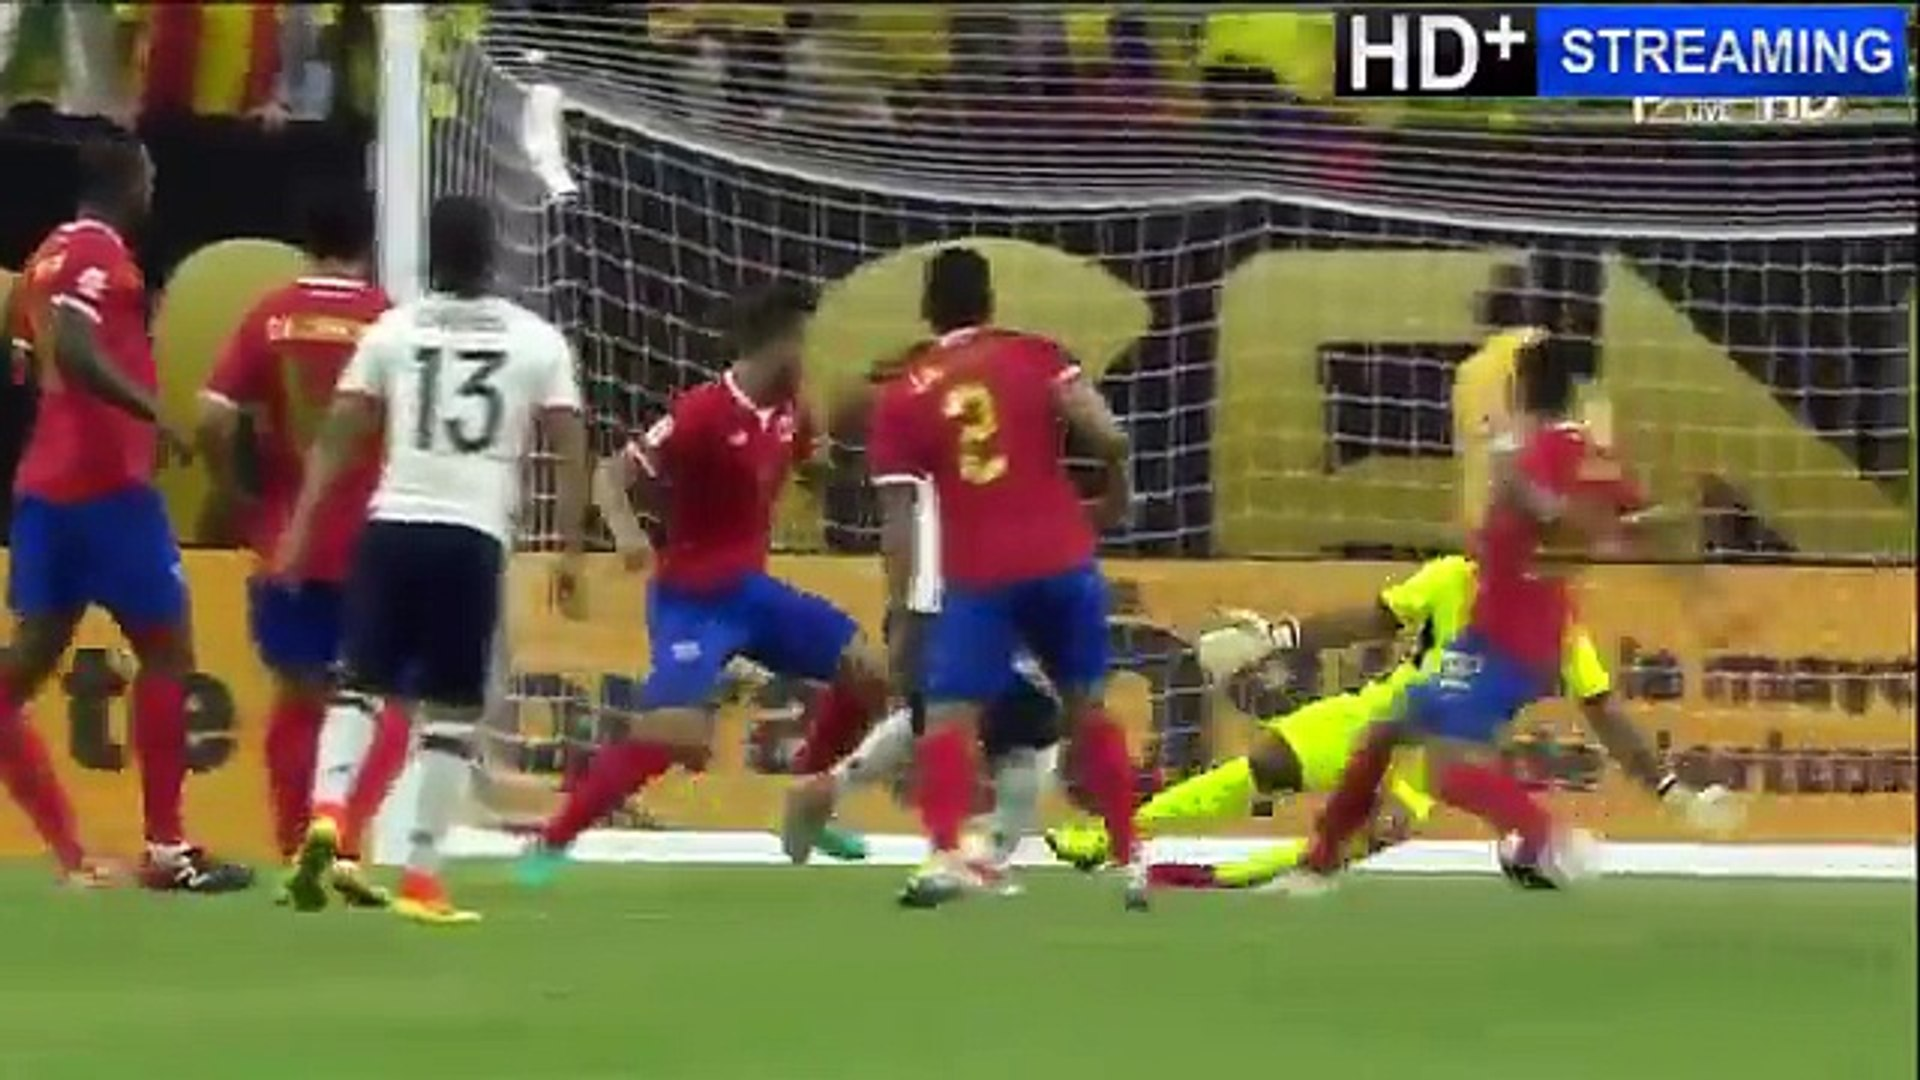 Colombia vs Costa Rica 2-3 Copa America Goals & Highlights English Commentary 11-06-2016